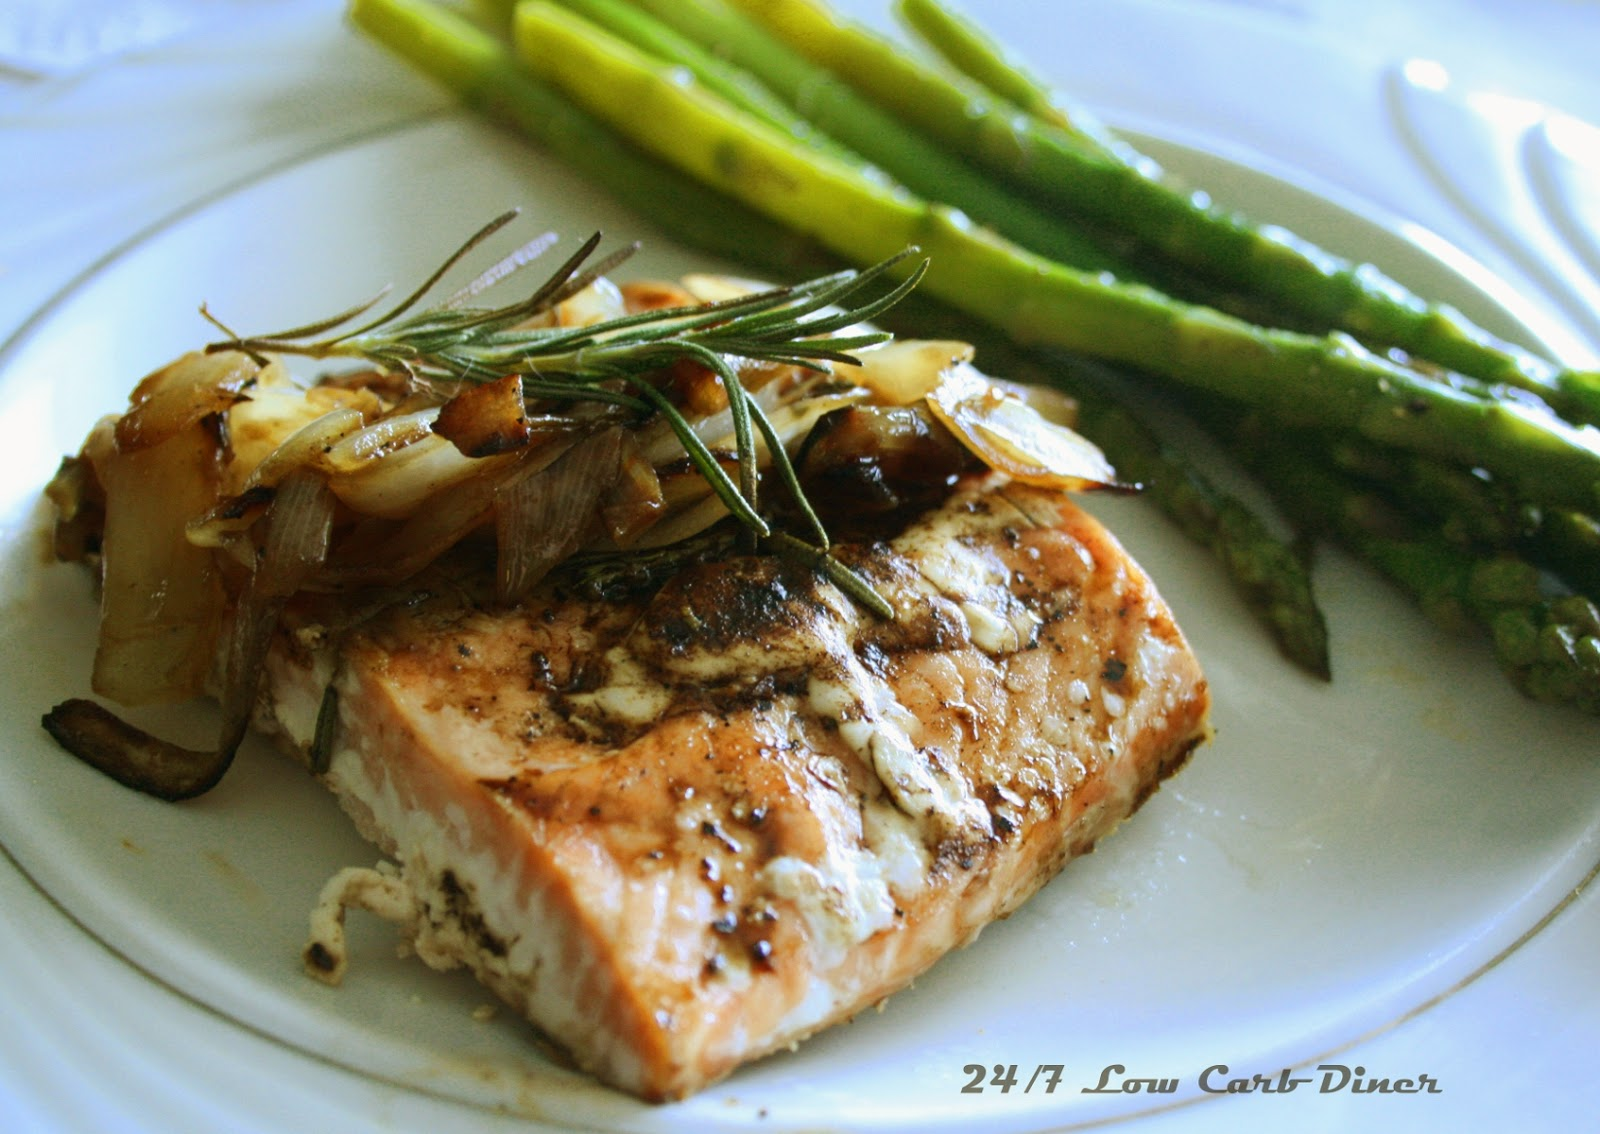 24/7 Low Carb Diner: Rosemary Balsamic Glazed Salmon